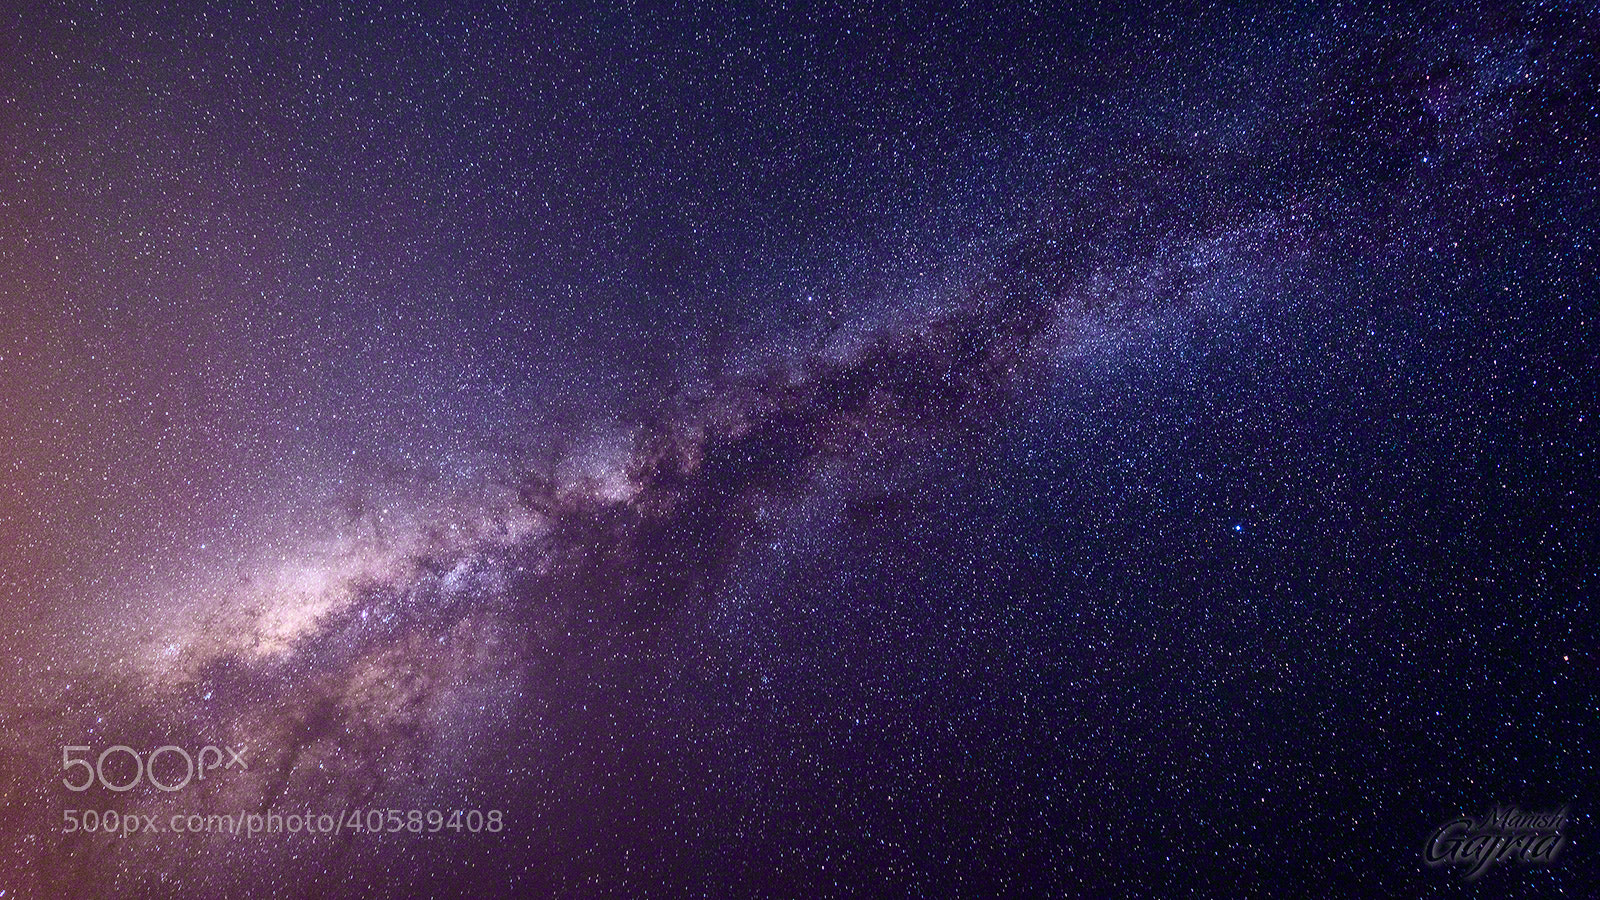 Photograph Seeing Stars in Ladakh by Manish Gajria on 500px